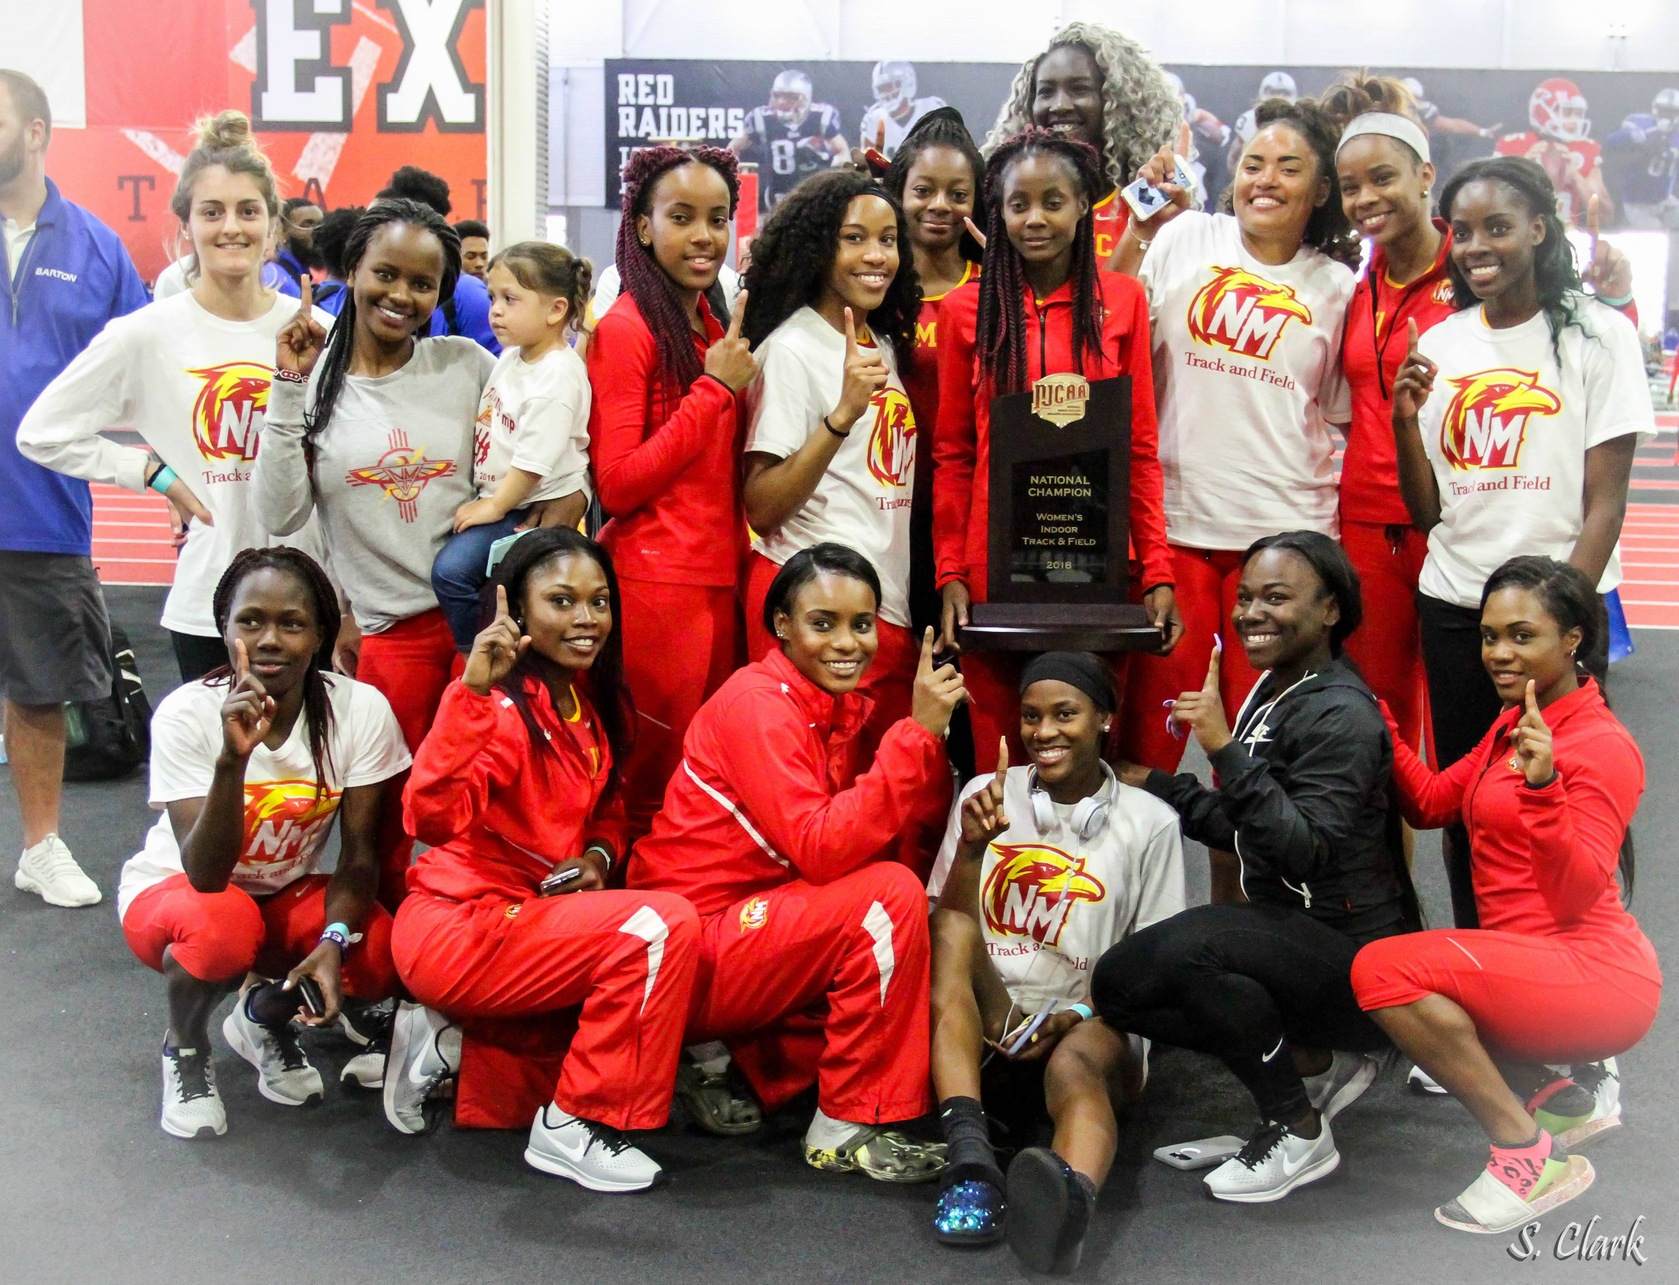 NMJC women's track squad wins national championship again